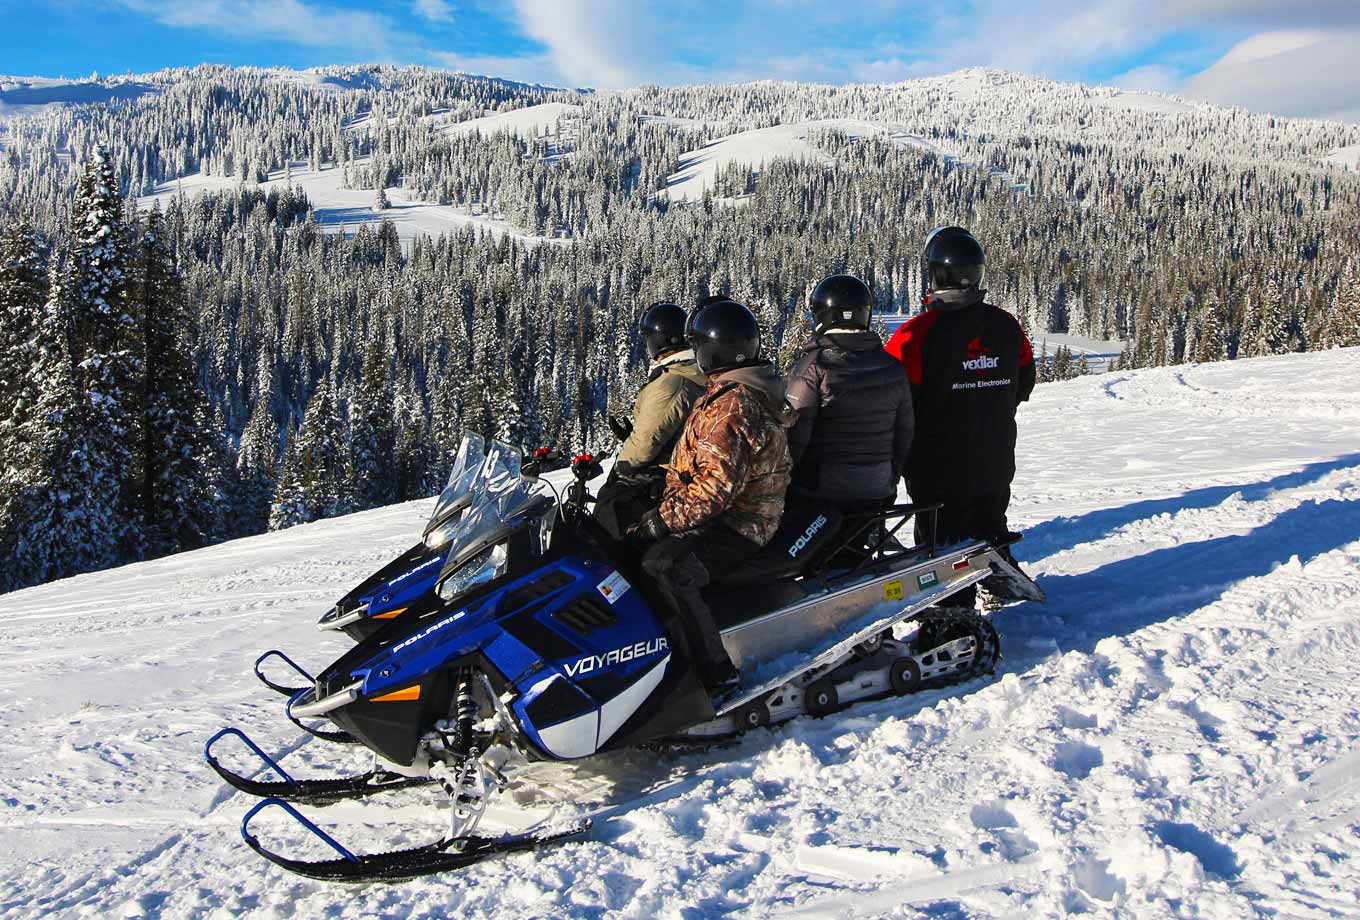 Snowmobile rentals in West Yellowstone